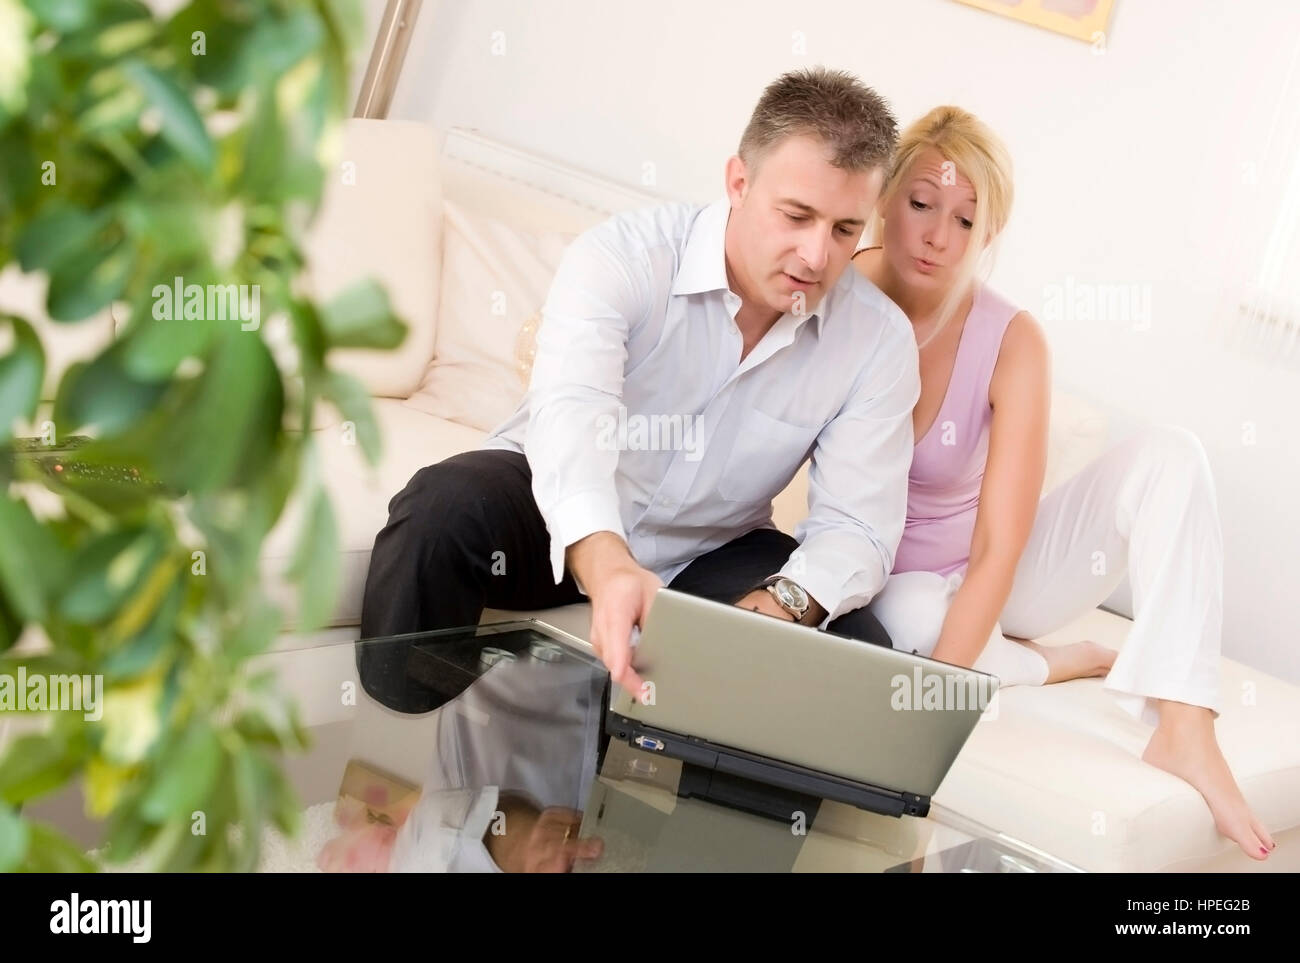 Model released , Paar sitzt mit Laptop auf Couch im Wohnraum - couple using laptop Stock Photo